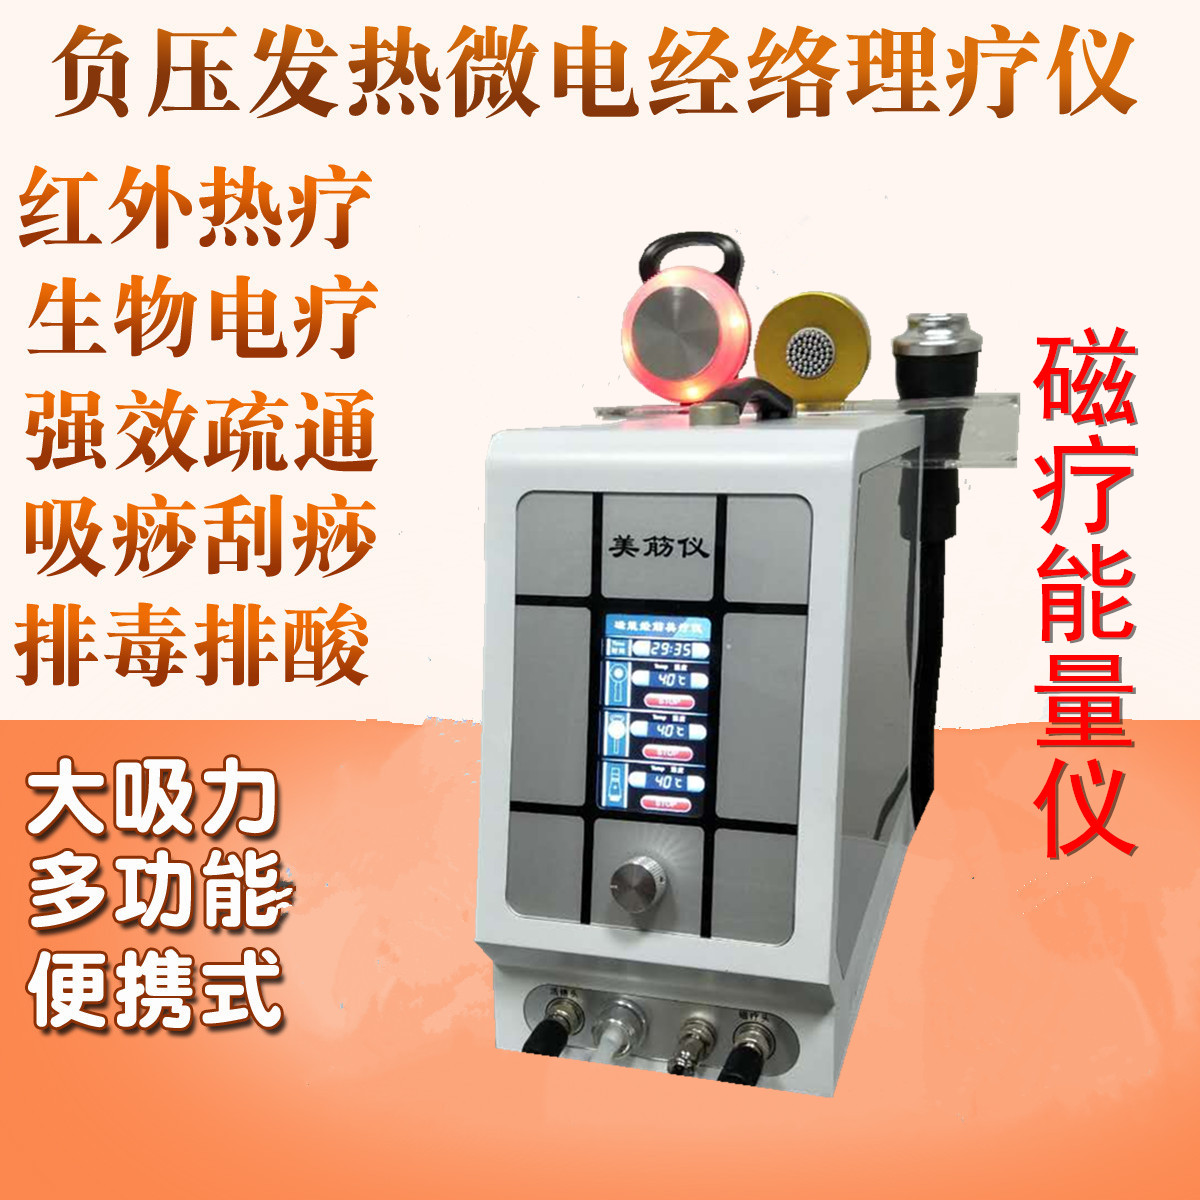 The instrument of negative pressure energy conservation, instrument of dredging meridian brush, health care instrument, magnetic energy instrument, magnetic therapy instrument